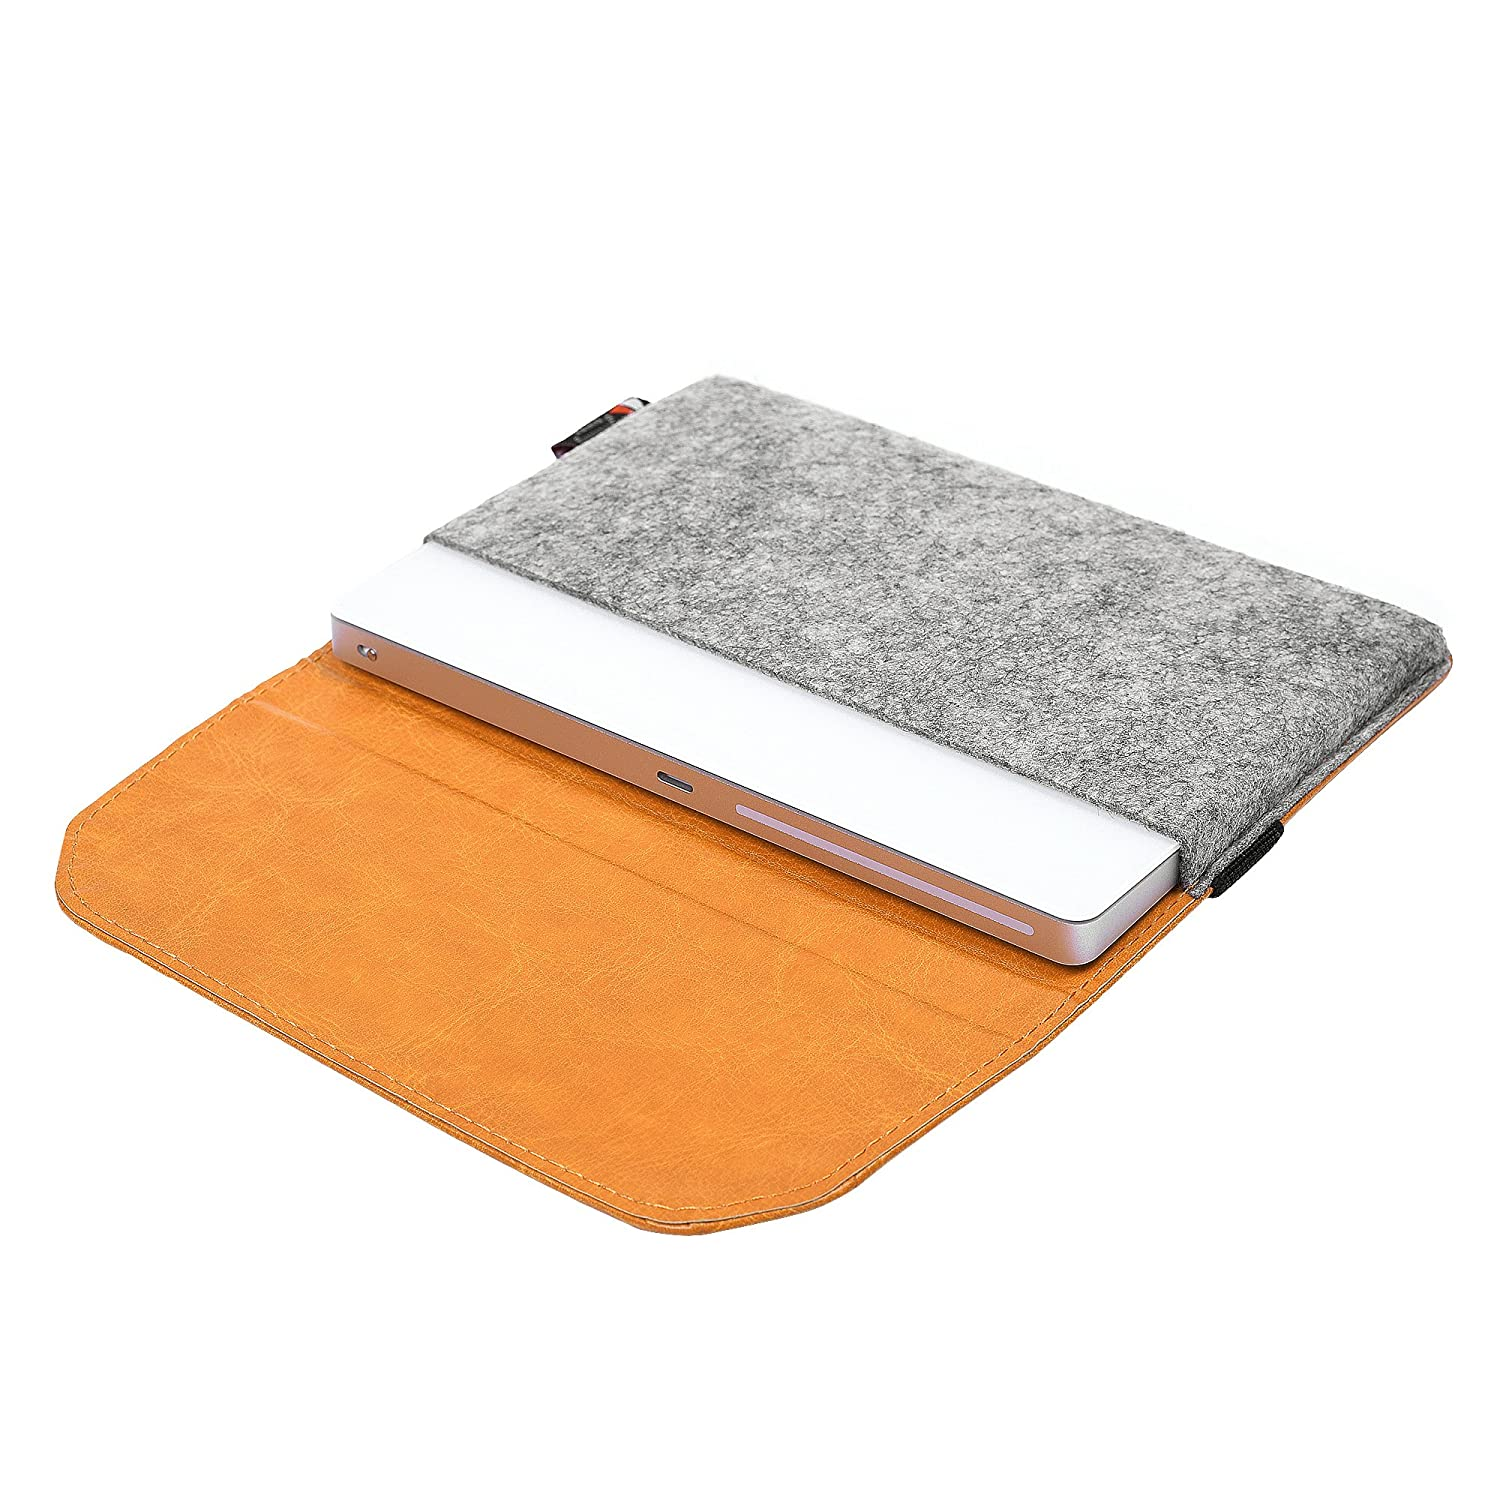 TXEsign Premium Felt PU Leather Protection Sleeve Travel Carrying Case Compatible with Apple Magic Trackpad 2 MJ2R2LL//A